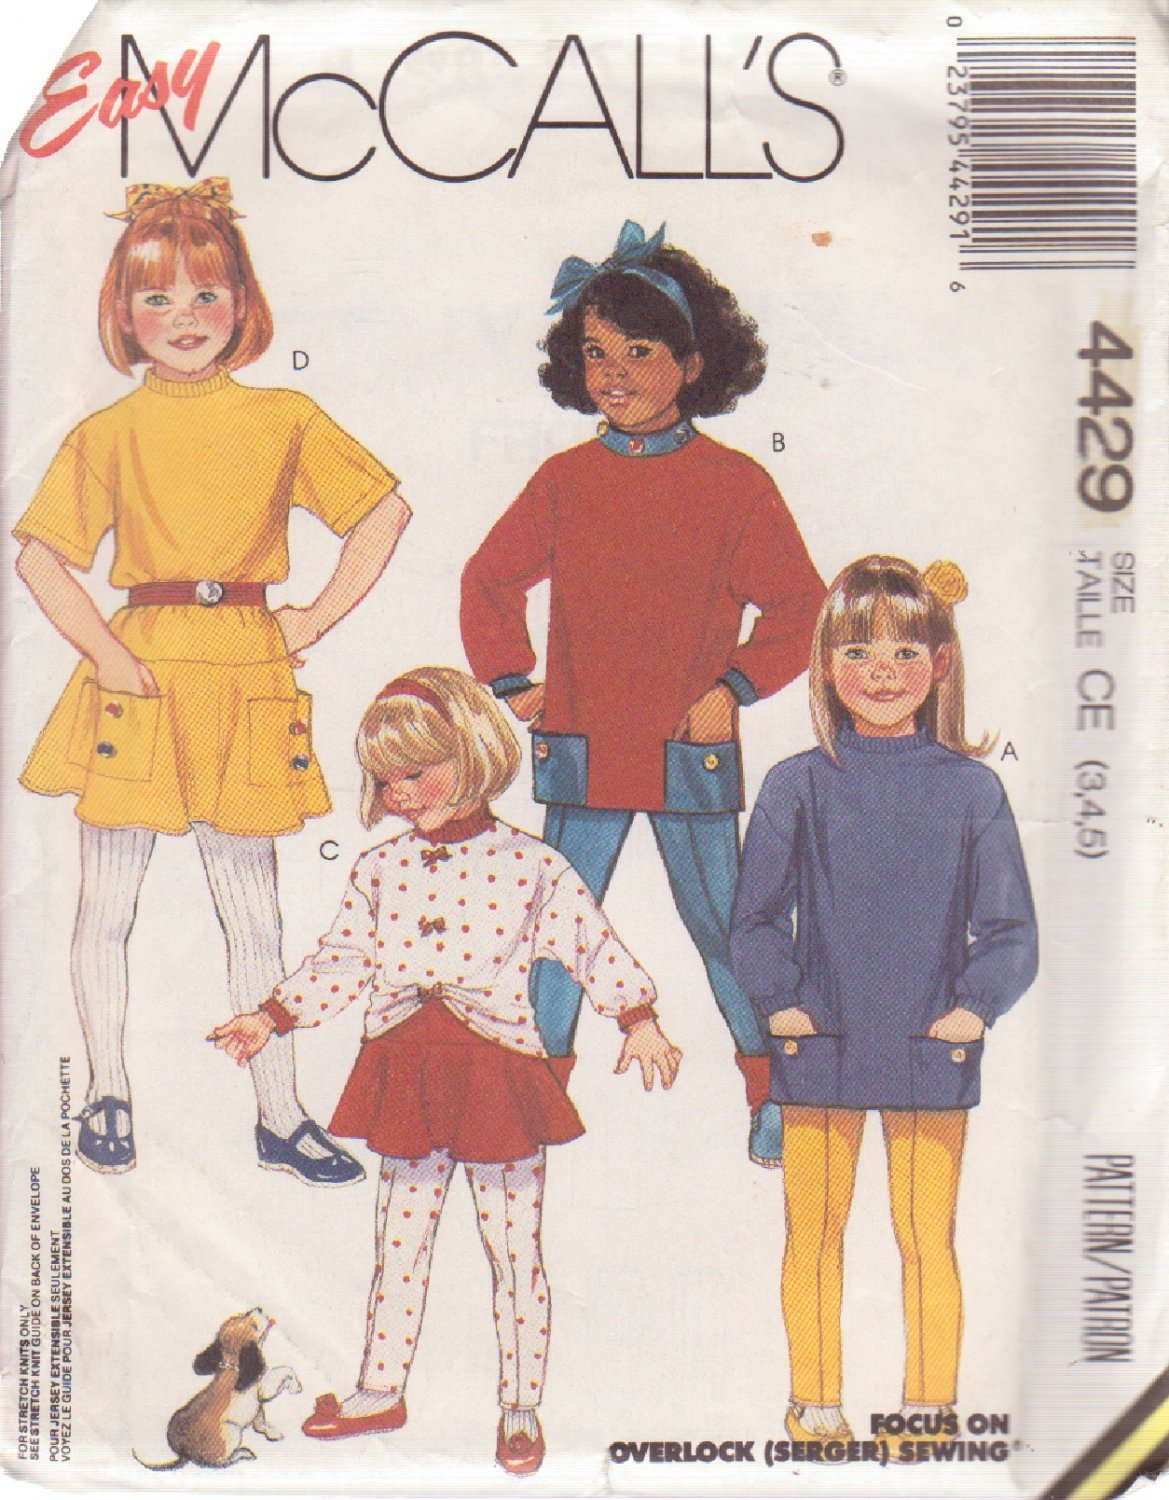 McCALL'S 1989 PATTERN 4429 SIZES 3,4,5 GIRLS' TOPS, SKIRT AND PANTS UNCUT